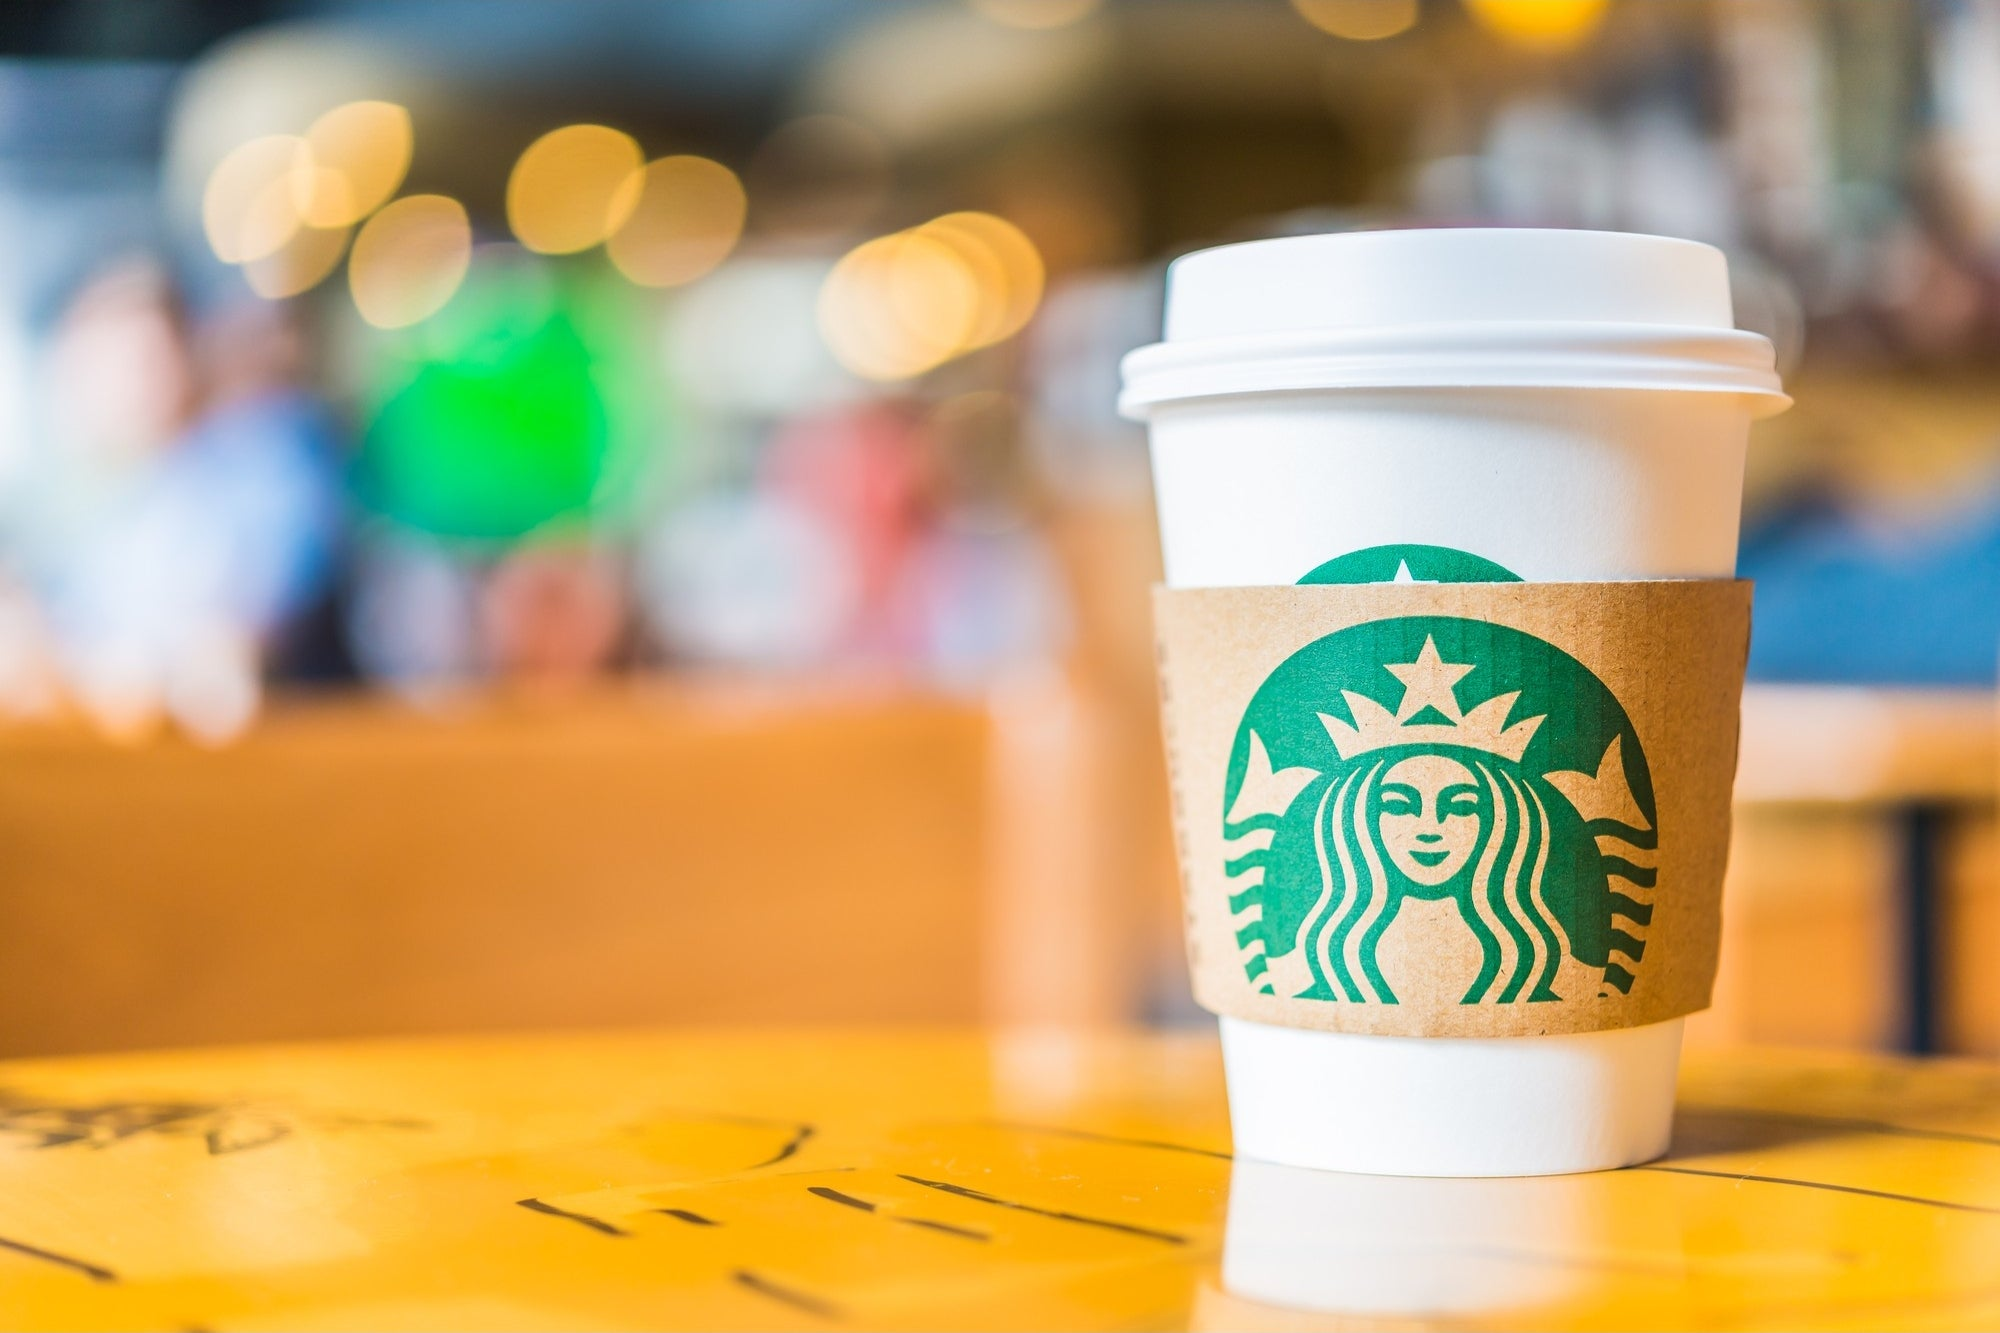 Eye! Dublin's Starbucks Was Fined 12,000 Euros And This Is Why photo